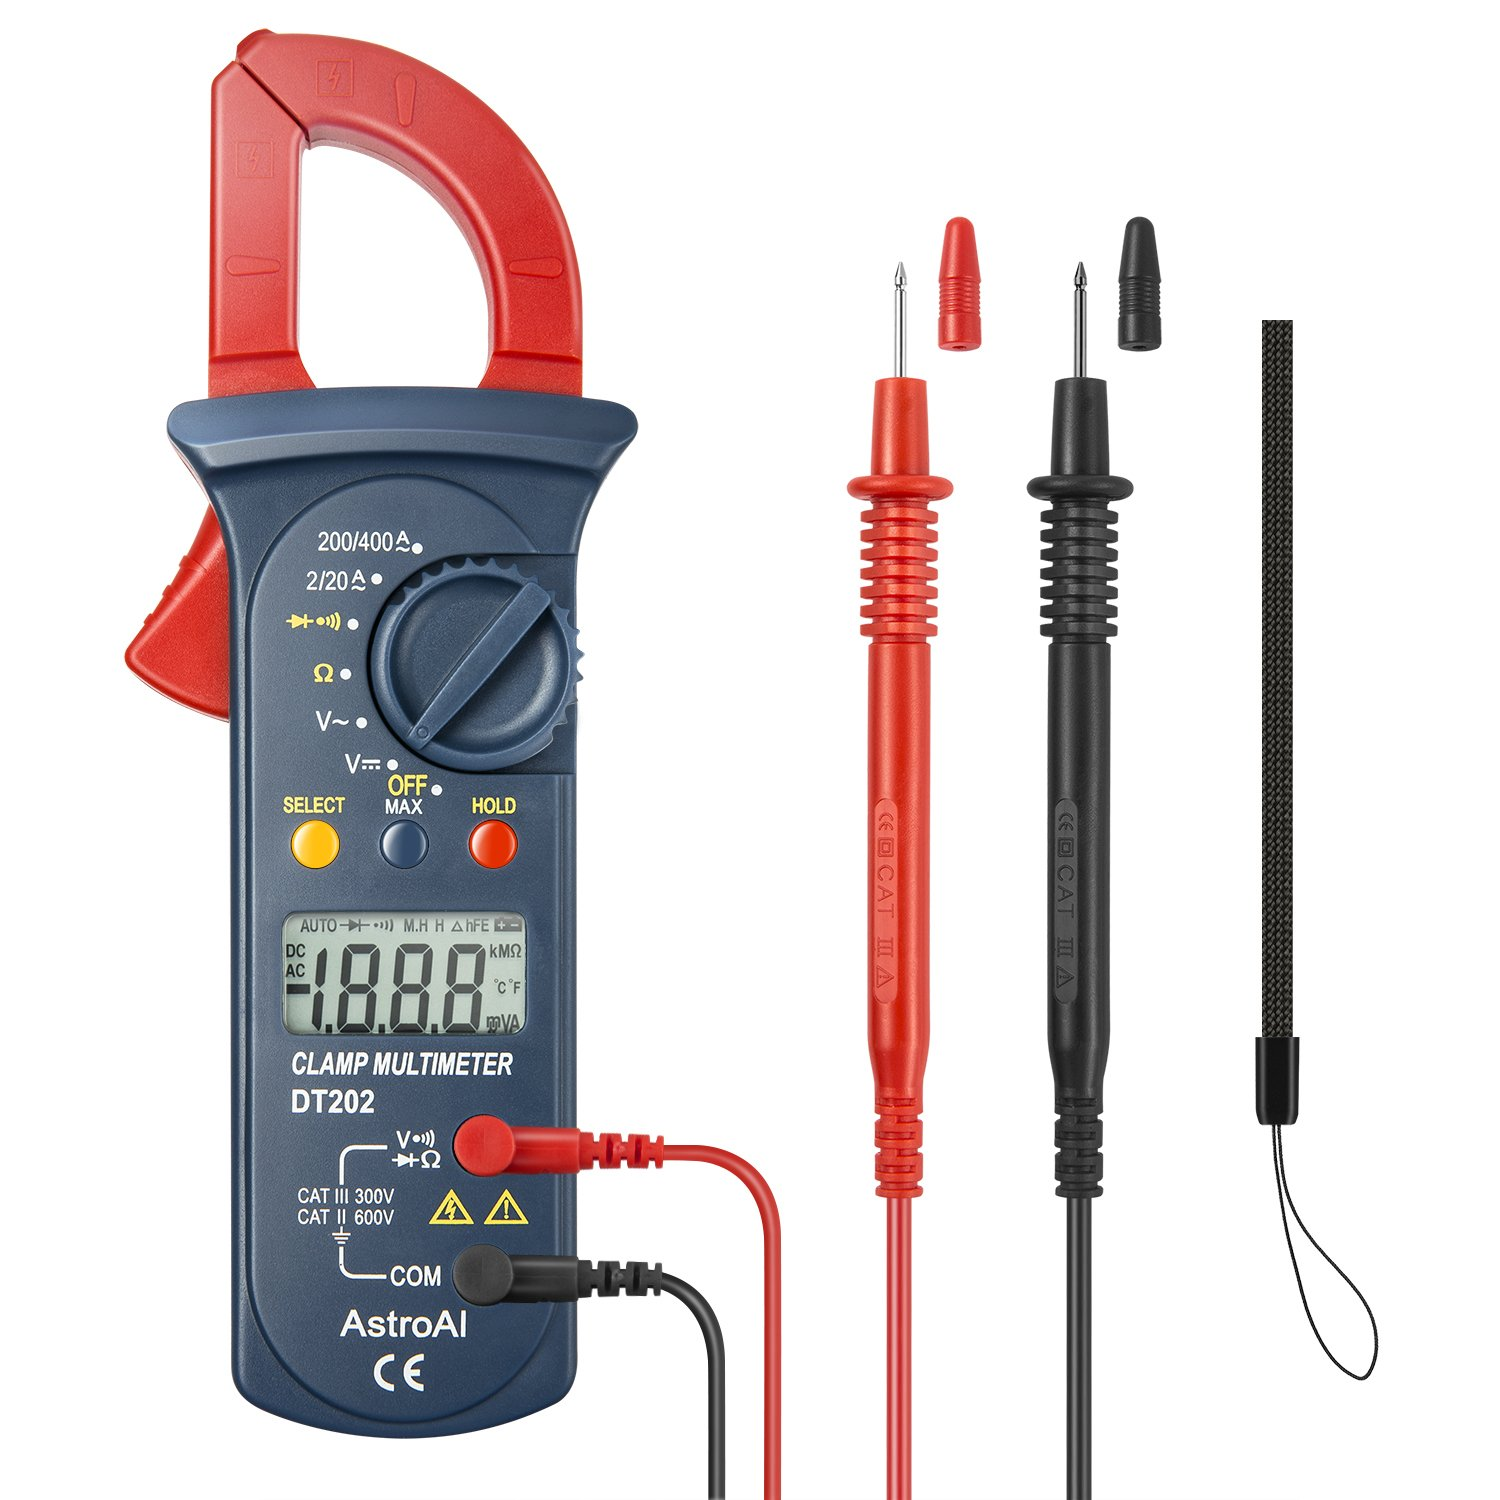 AstroAI Digital Clamp Meter, Multimeter Volt Meter with Auto Ranging; Measures Voltage Tester, AC Current, Resistance, Continuity; Tests Diodes, Red/Black by AstroAI